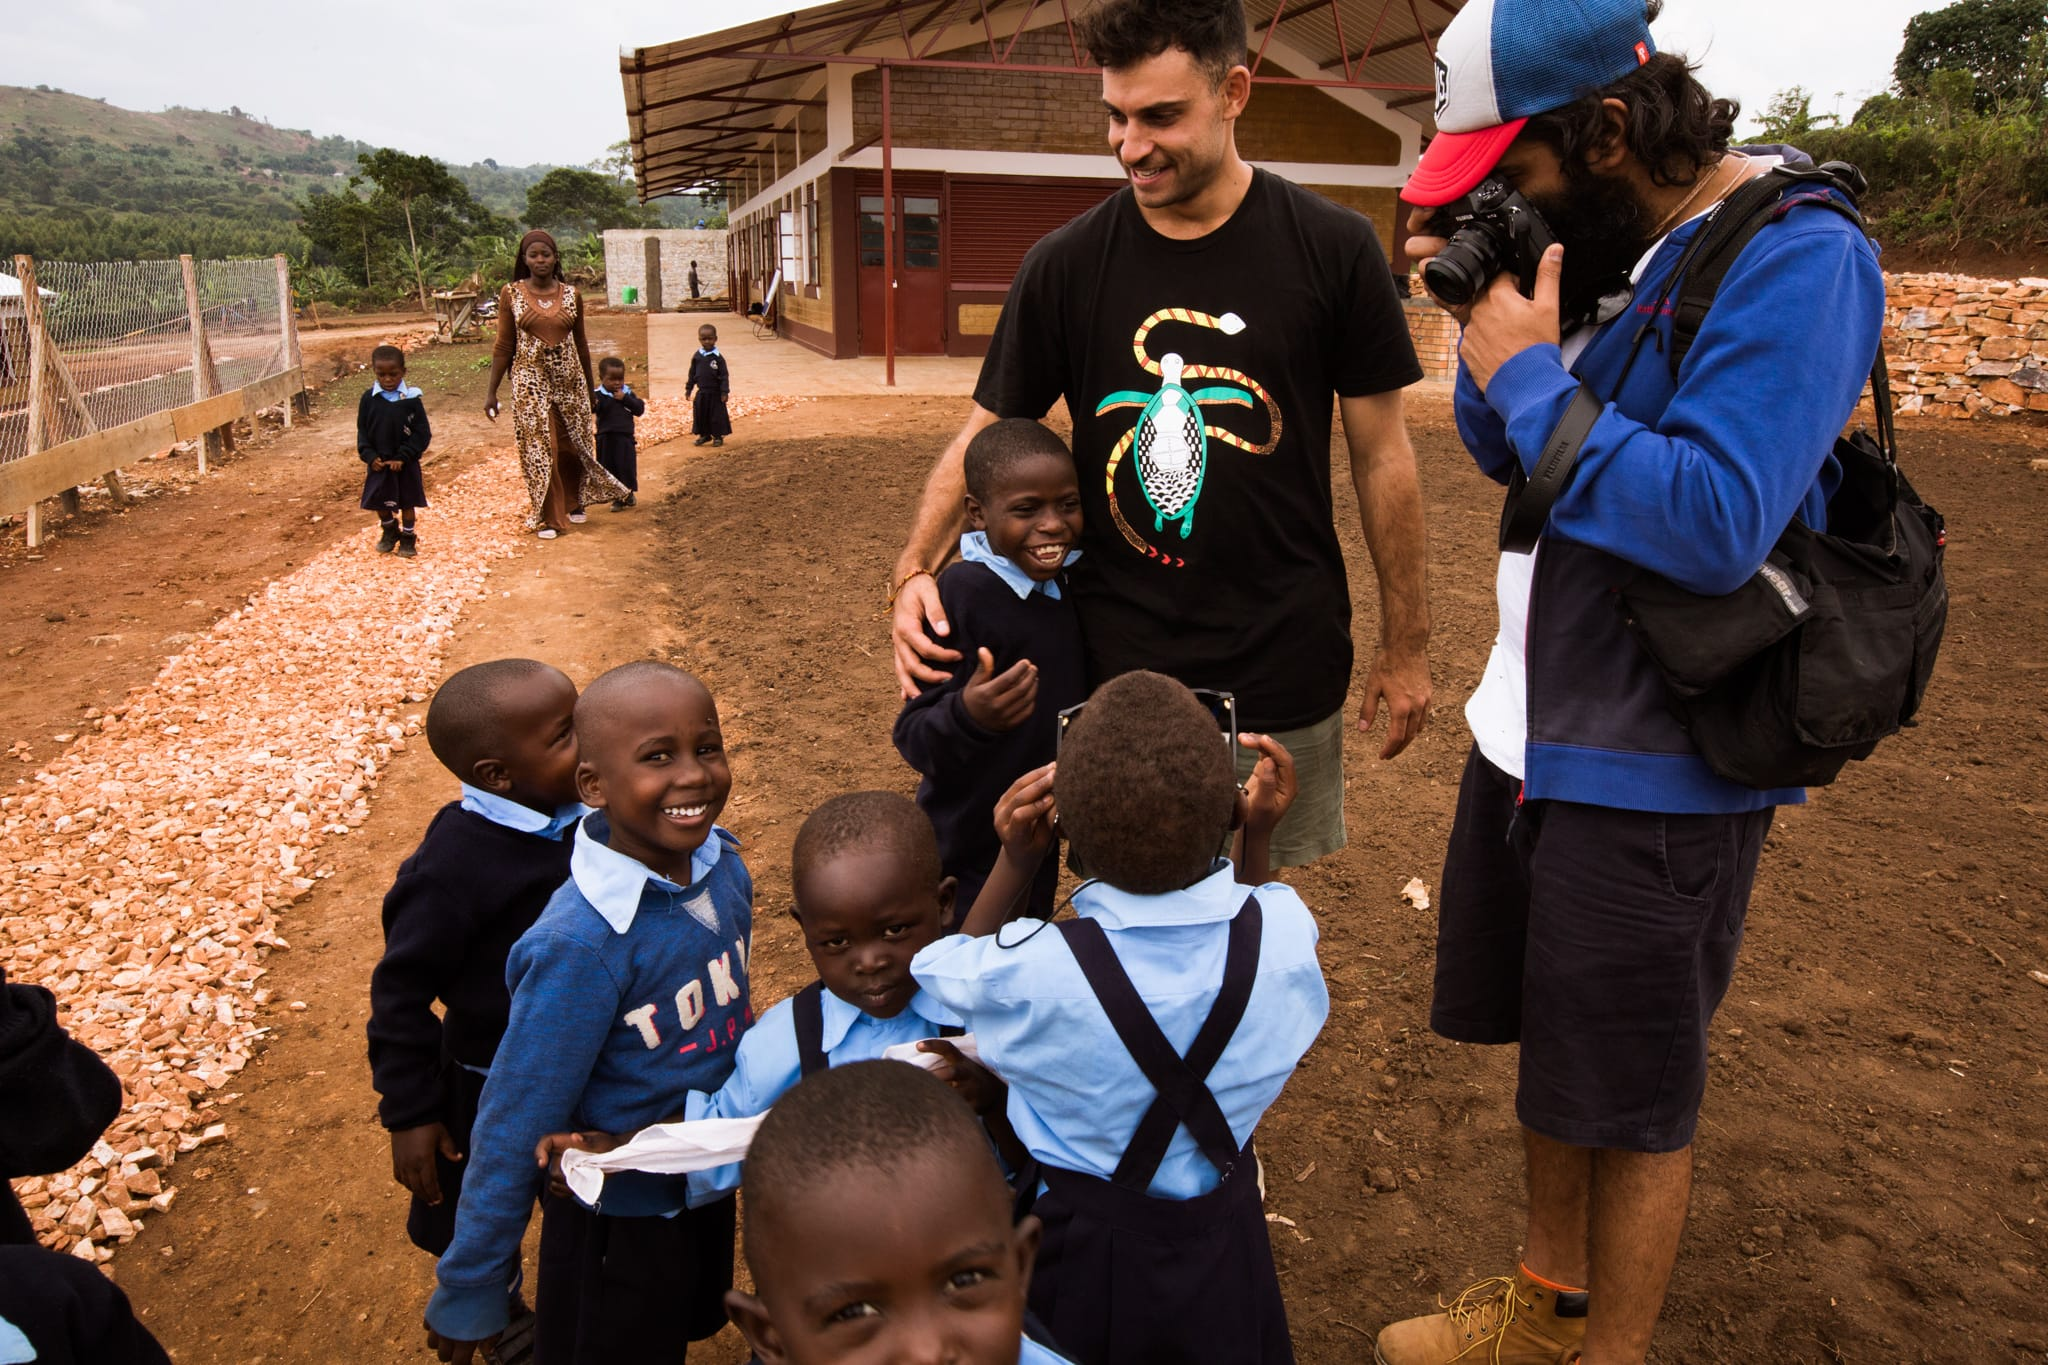 Photo credit: Jake Trindorfer. Magic moments at the School For Life with Kabir and the team.